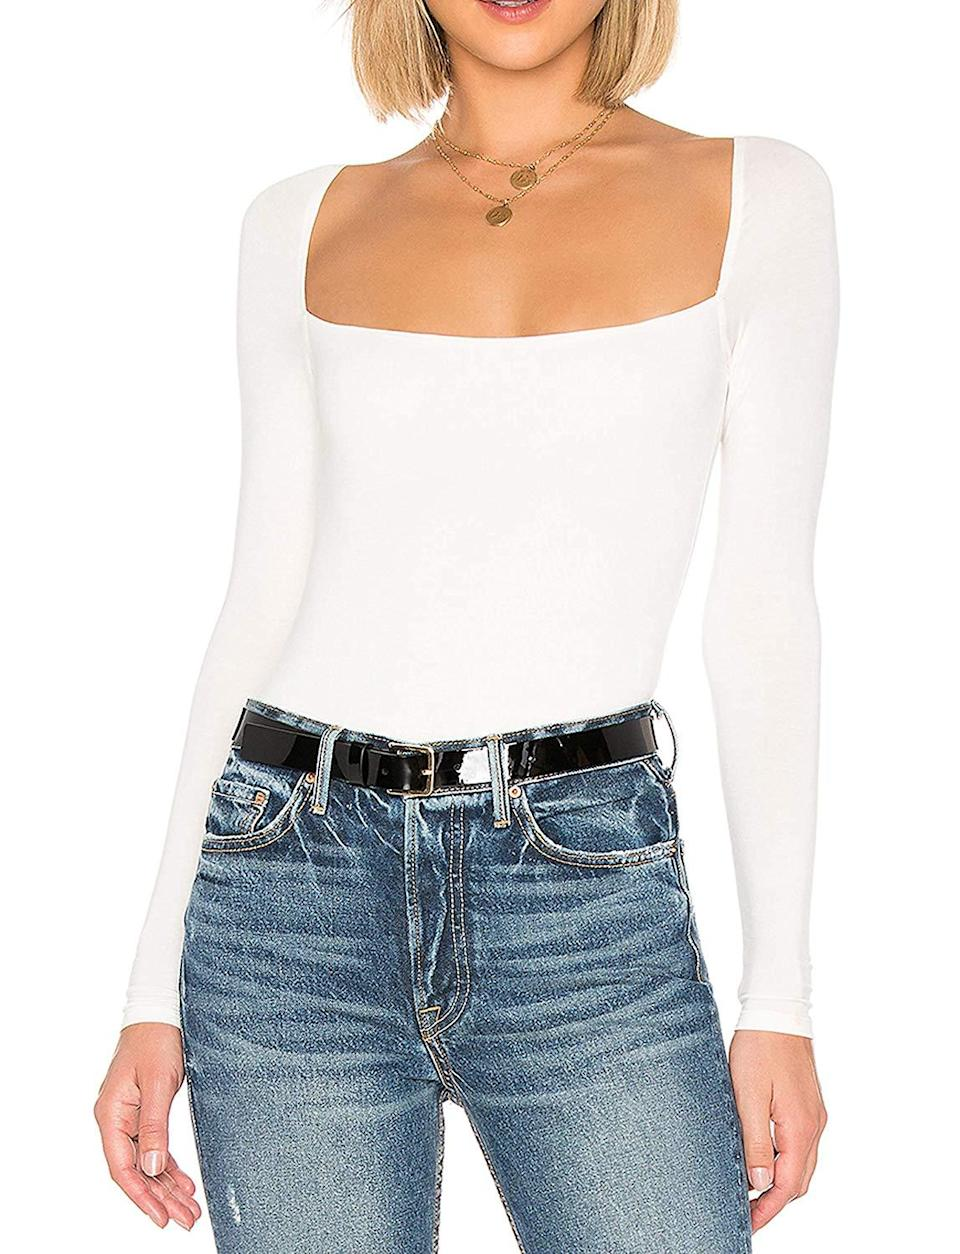 """<h2>Maya Maya Square-Neck Bodysuit</h2><br>A square-cut neckline gives this basic bodysuit a streamlined edge ideal for layering under a pair of tailored trousers. It also comes in some scintillating summer shades like red and hot pink. <br><br><strong>MAYA MAYA</strong> Long Sleeve Square-Cut Bodysuit, $, available at <a href=""""https://amzn.to/382xQvN"""" rel=""""nofollow noopener"""" target=""""_blank"""" data-ylk=""""slk:Amazon"""" class=""""link rapid-noclick-resp"""">Amazon</a>"""